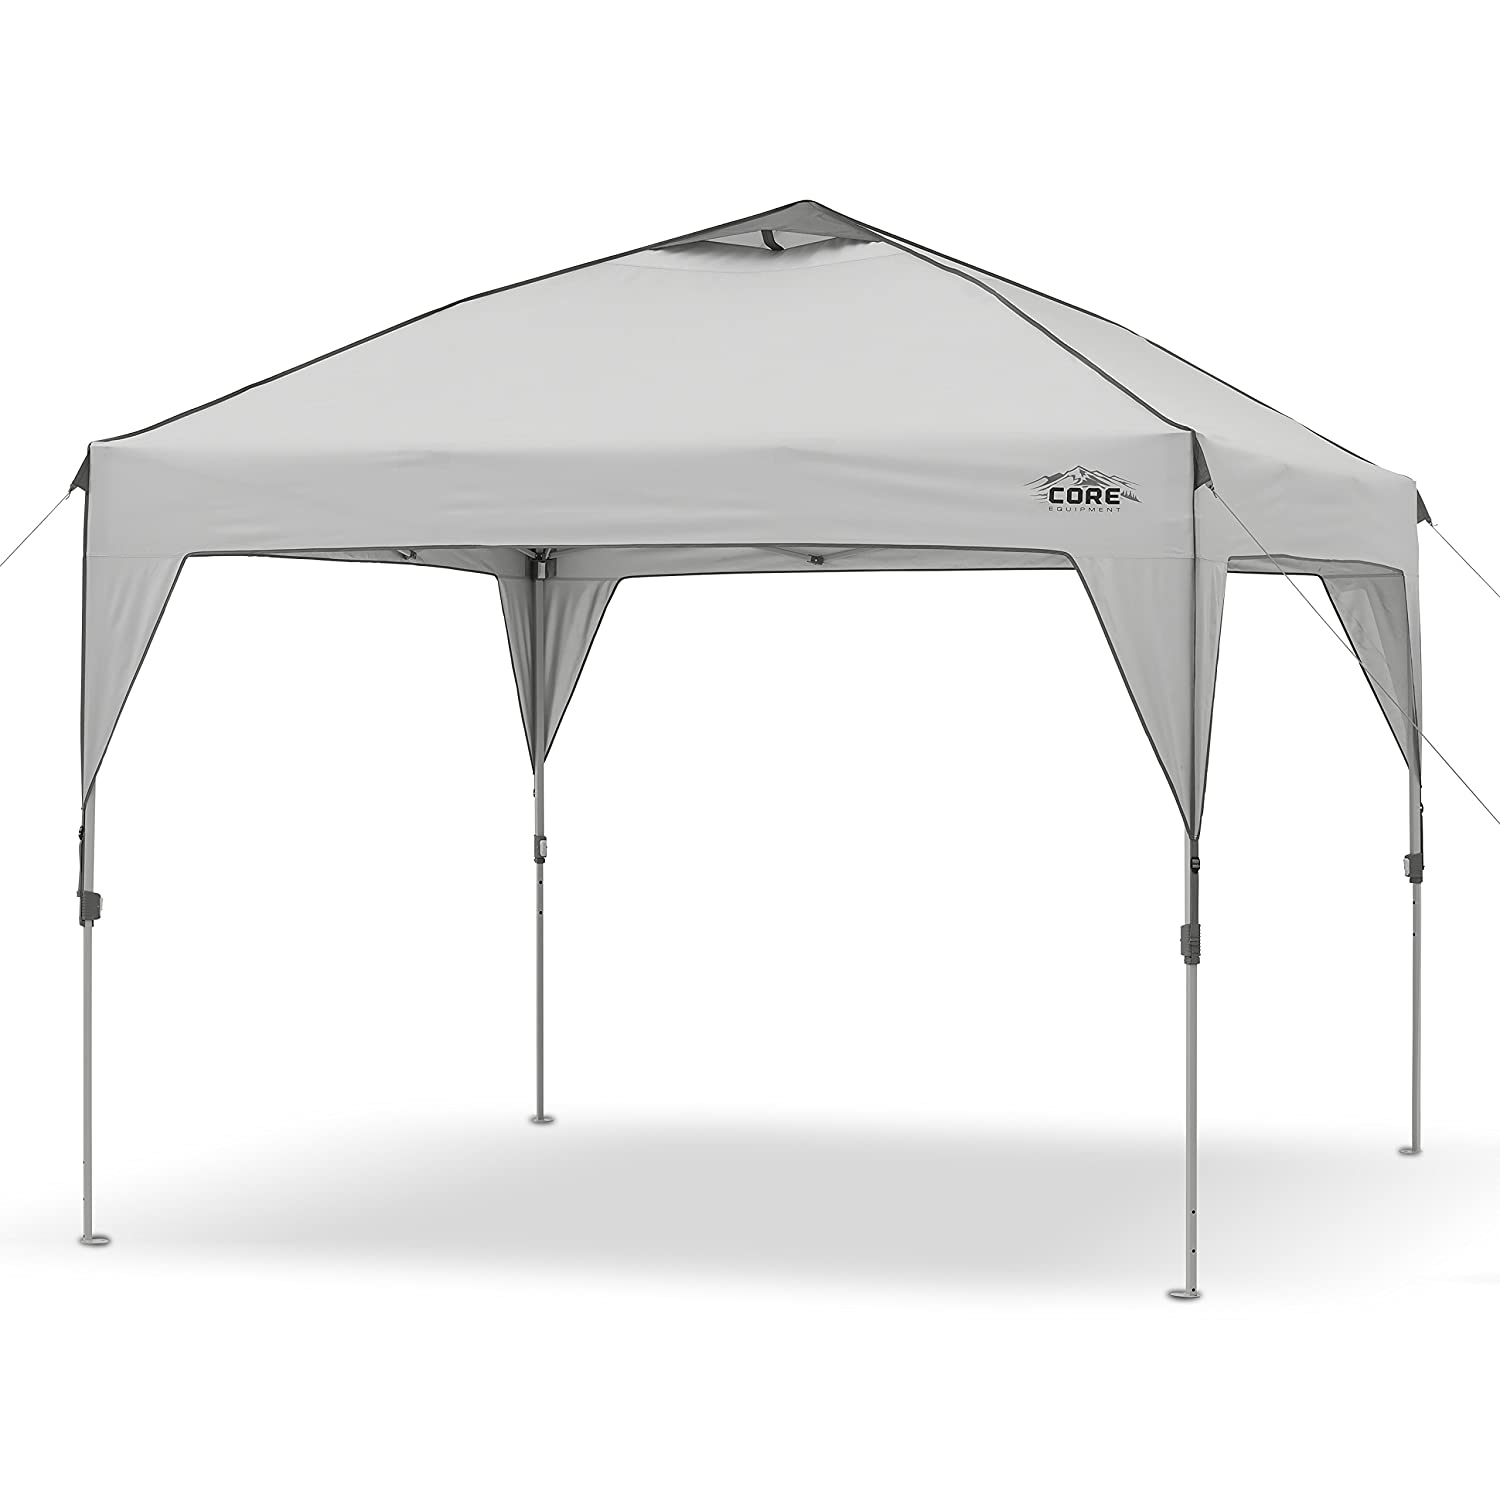 huge selection of 4a545 3c4d5 CORE 10' x 10' Instant Shelter Pop-Up Canopy Tent with Wheeled Carry Bag